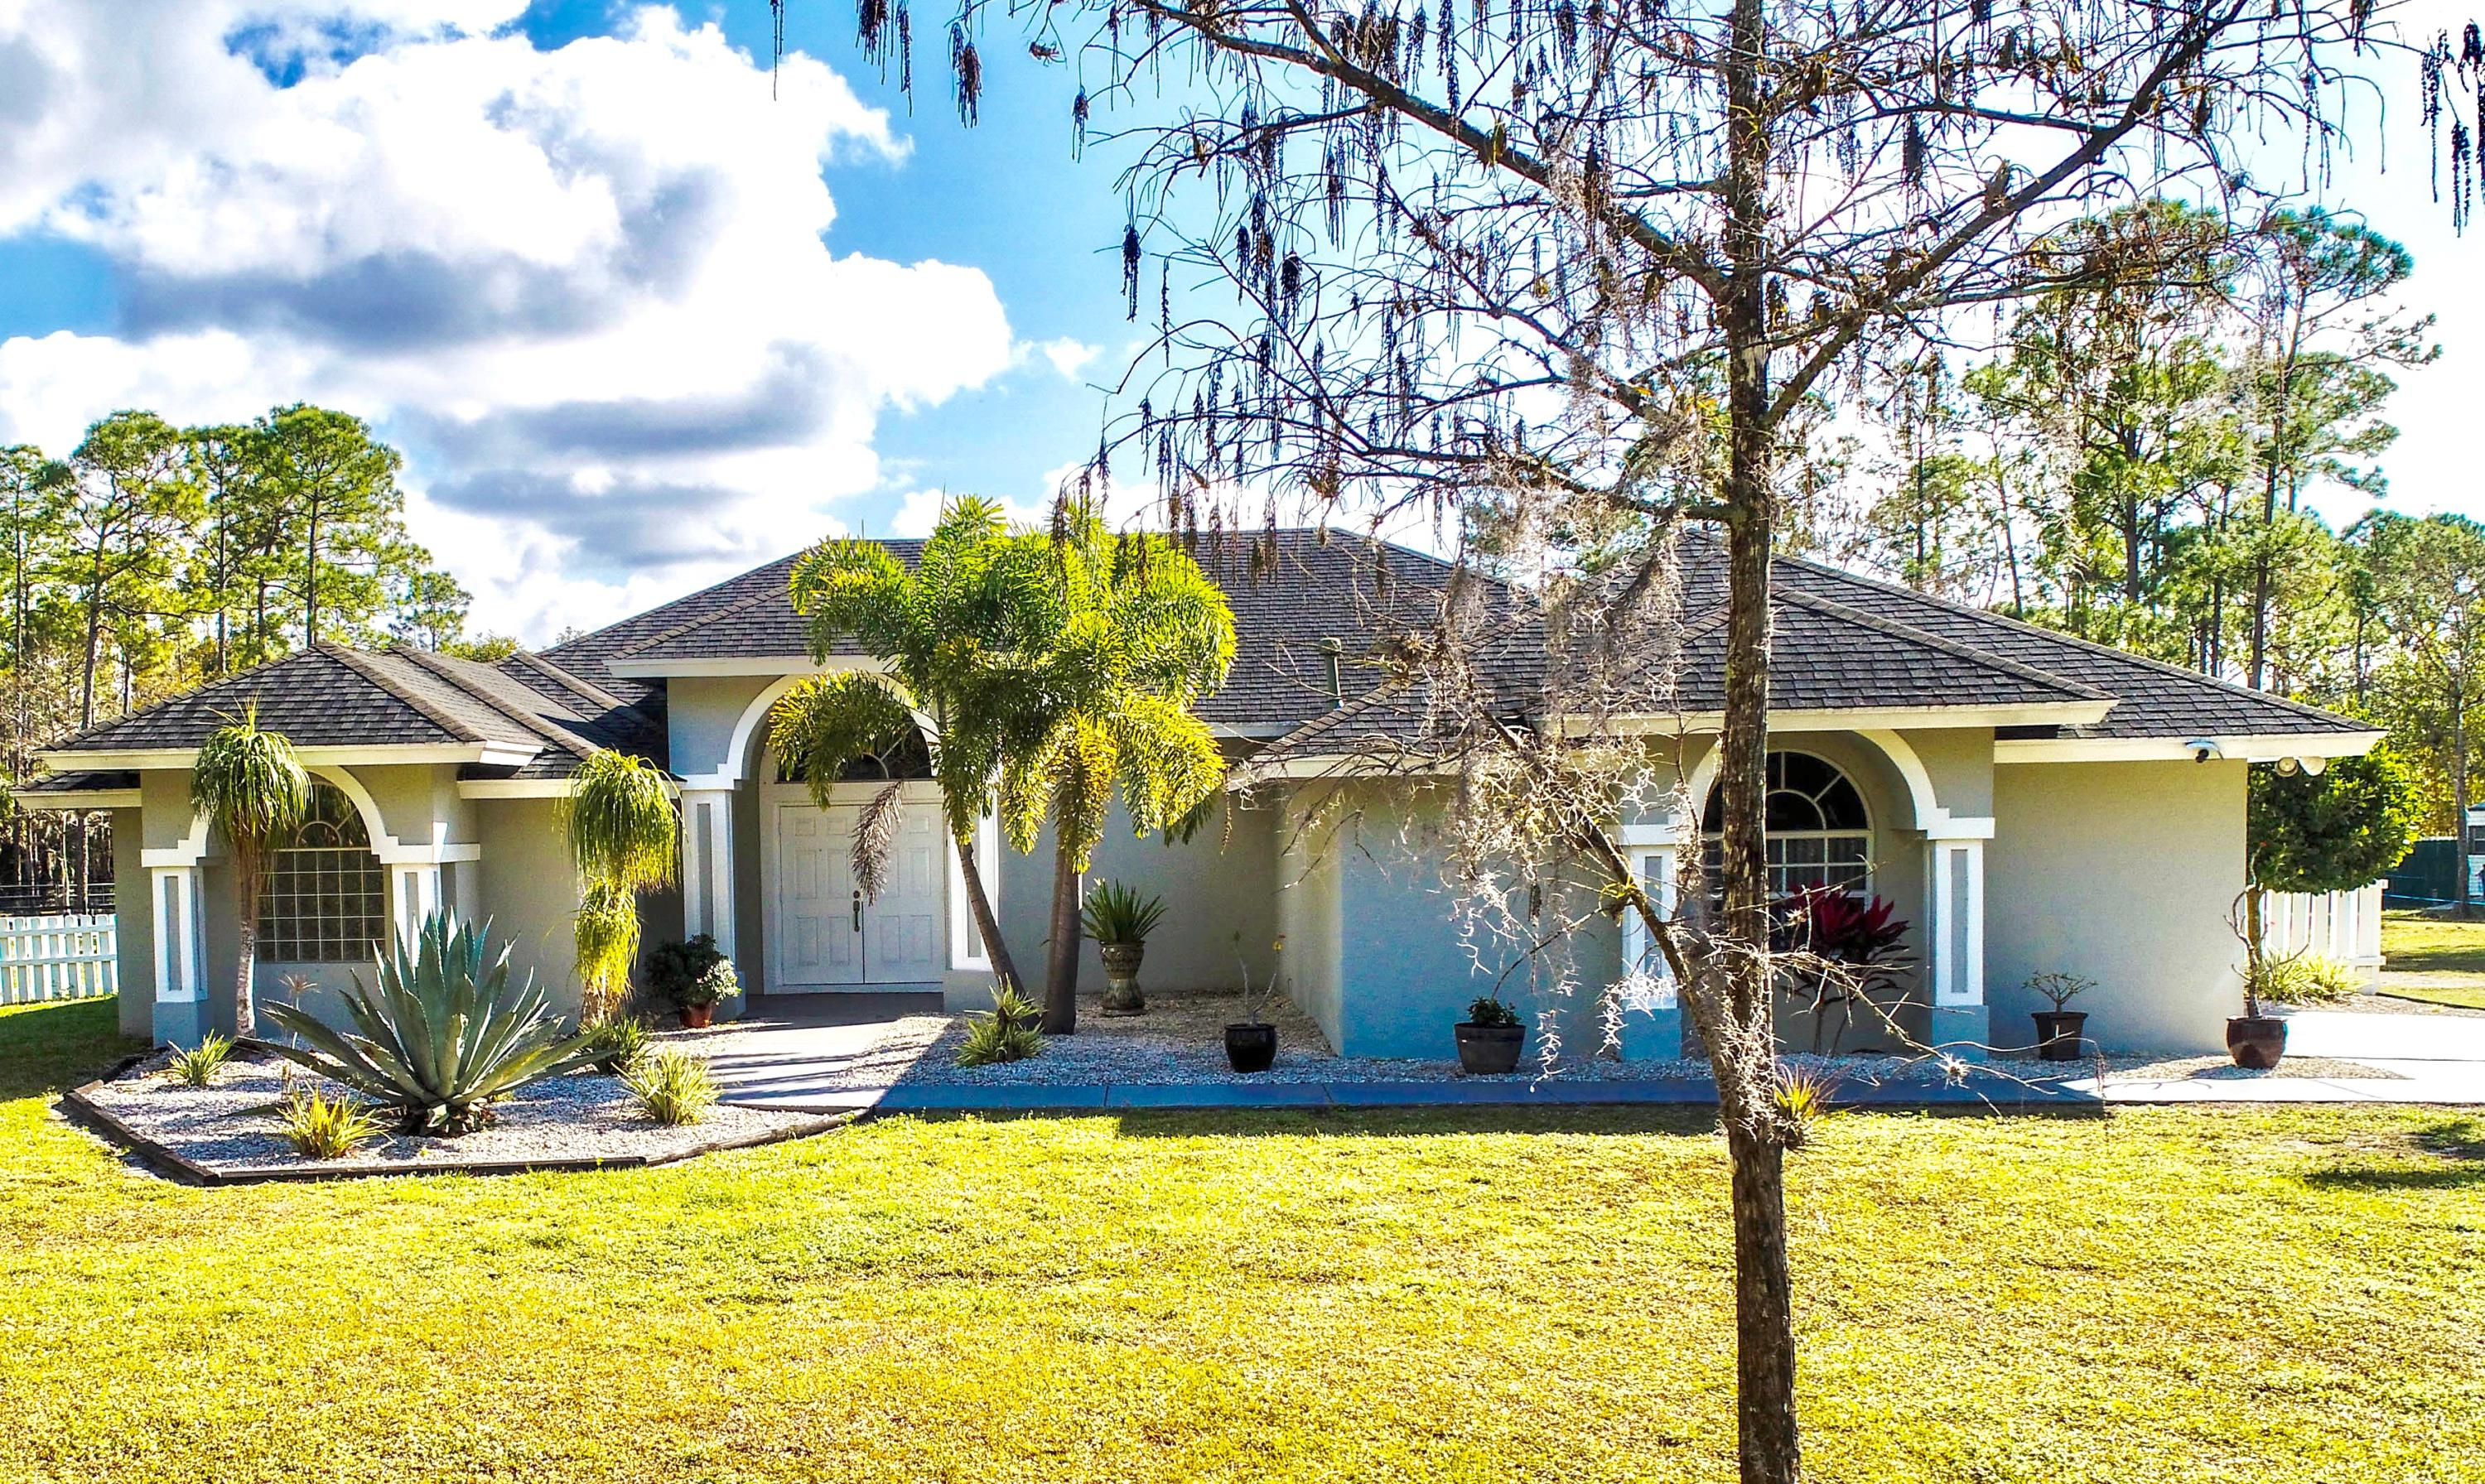 2558 Palm Deer Drive, Loxahatchee in Palm Beach County, FL 33470 Home for Sale